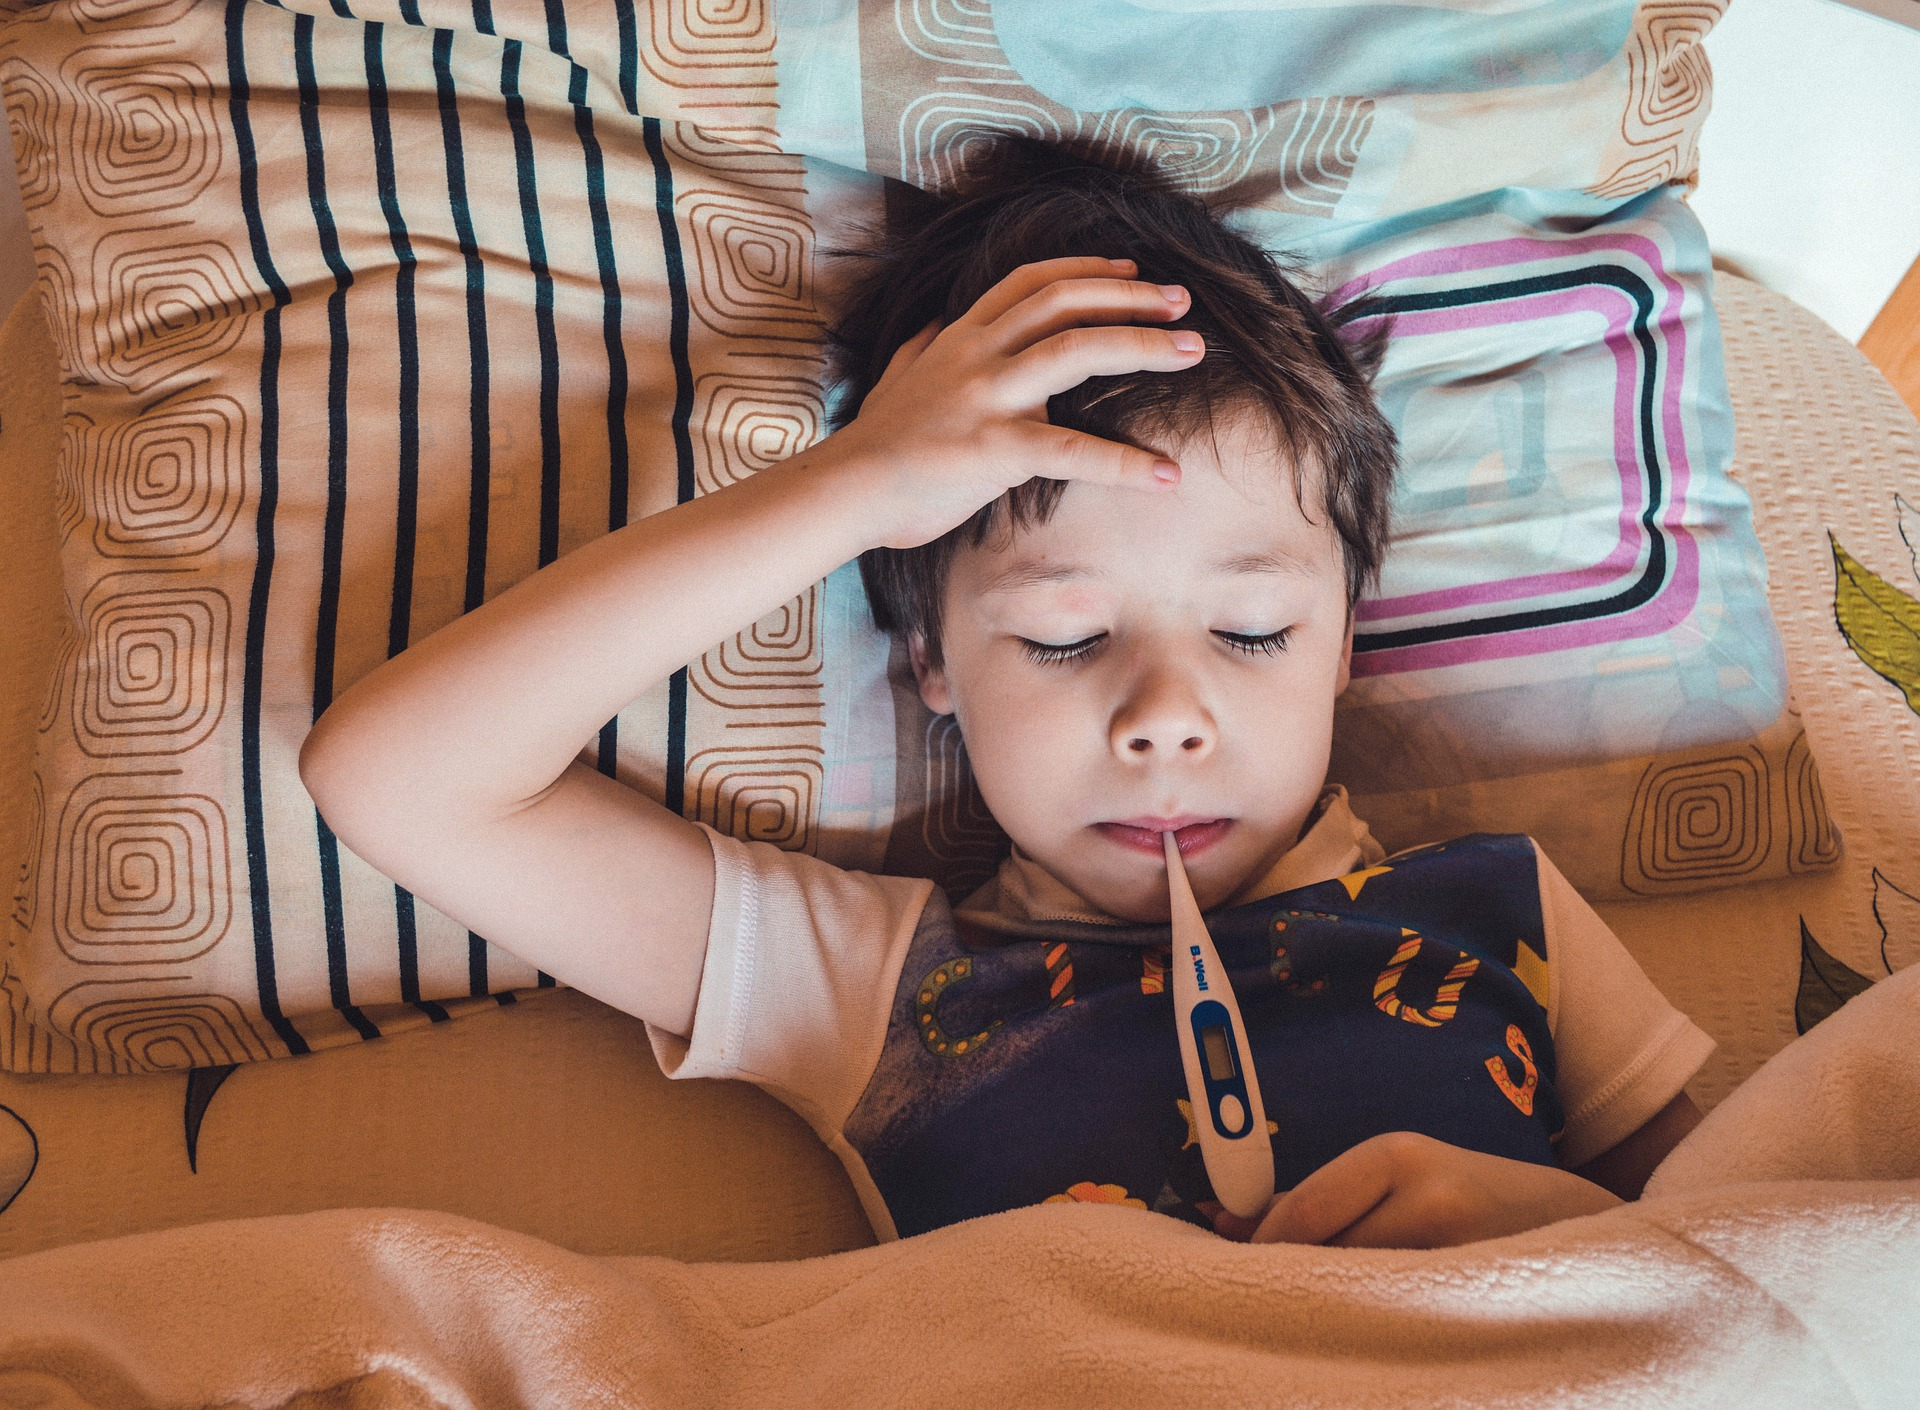 little boy sick with thermometer sick at Disneyland